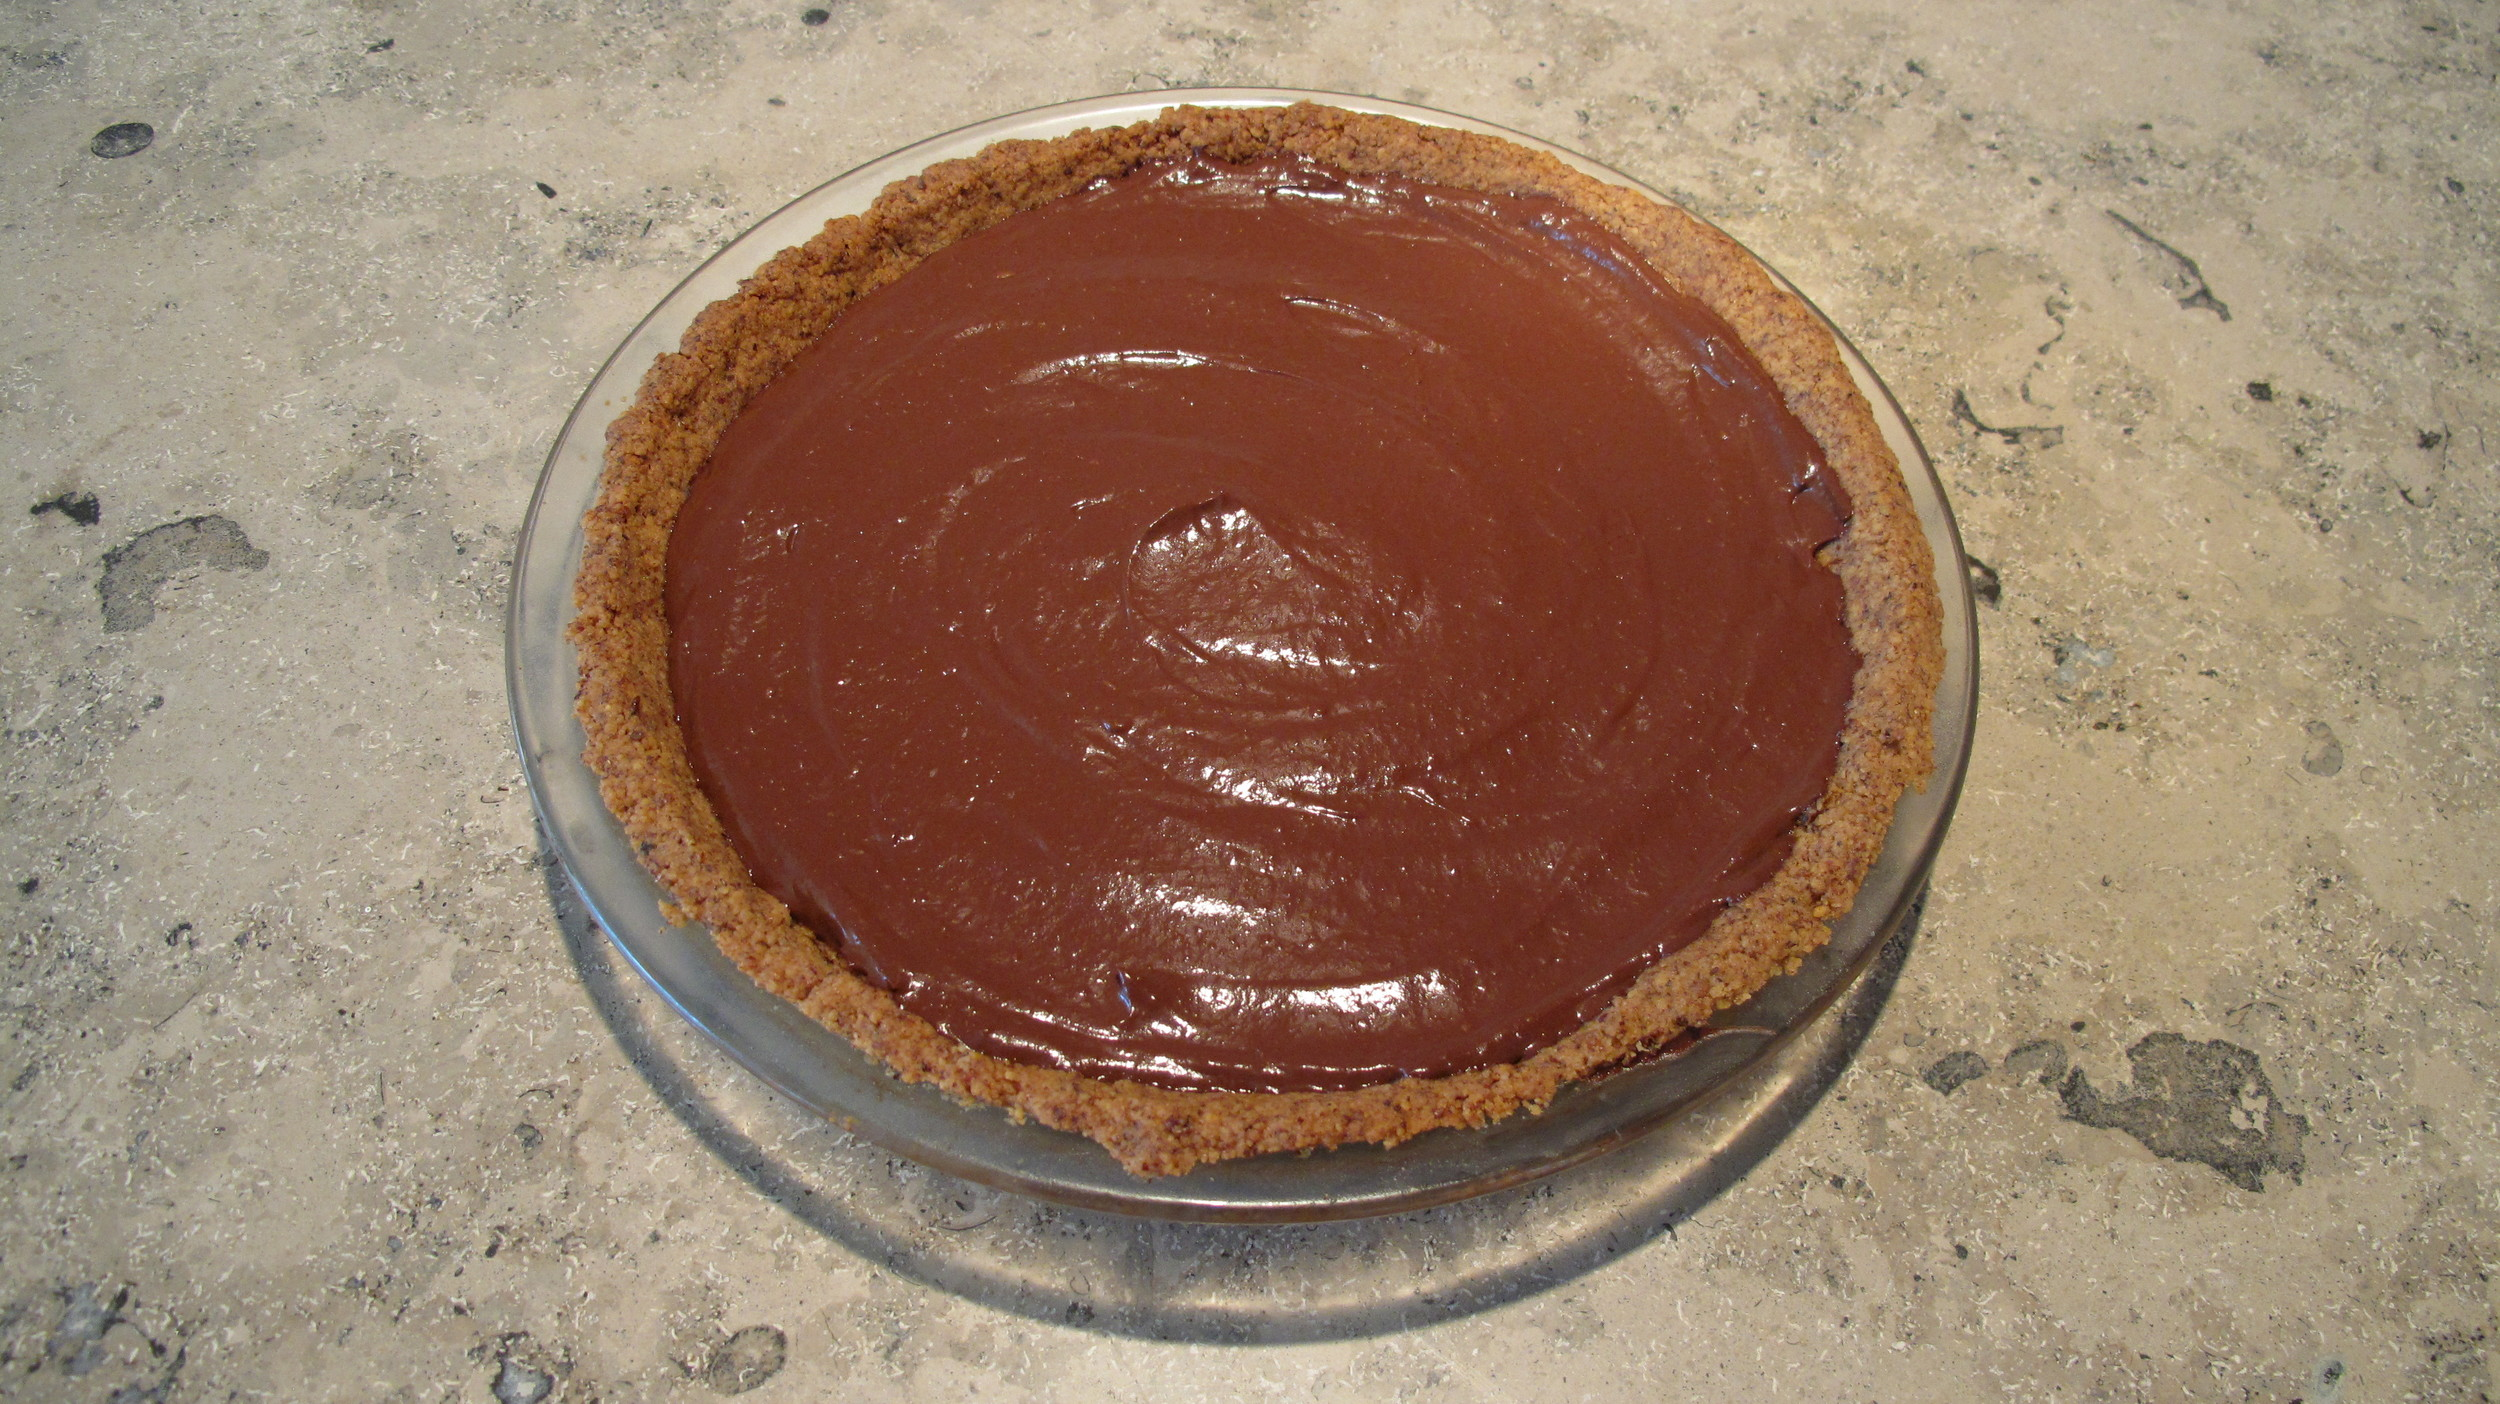 This pie should be illegal to make it's so yummy.